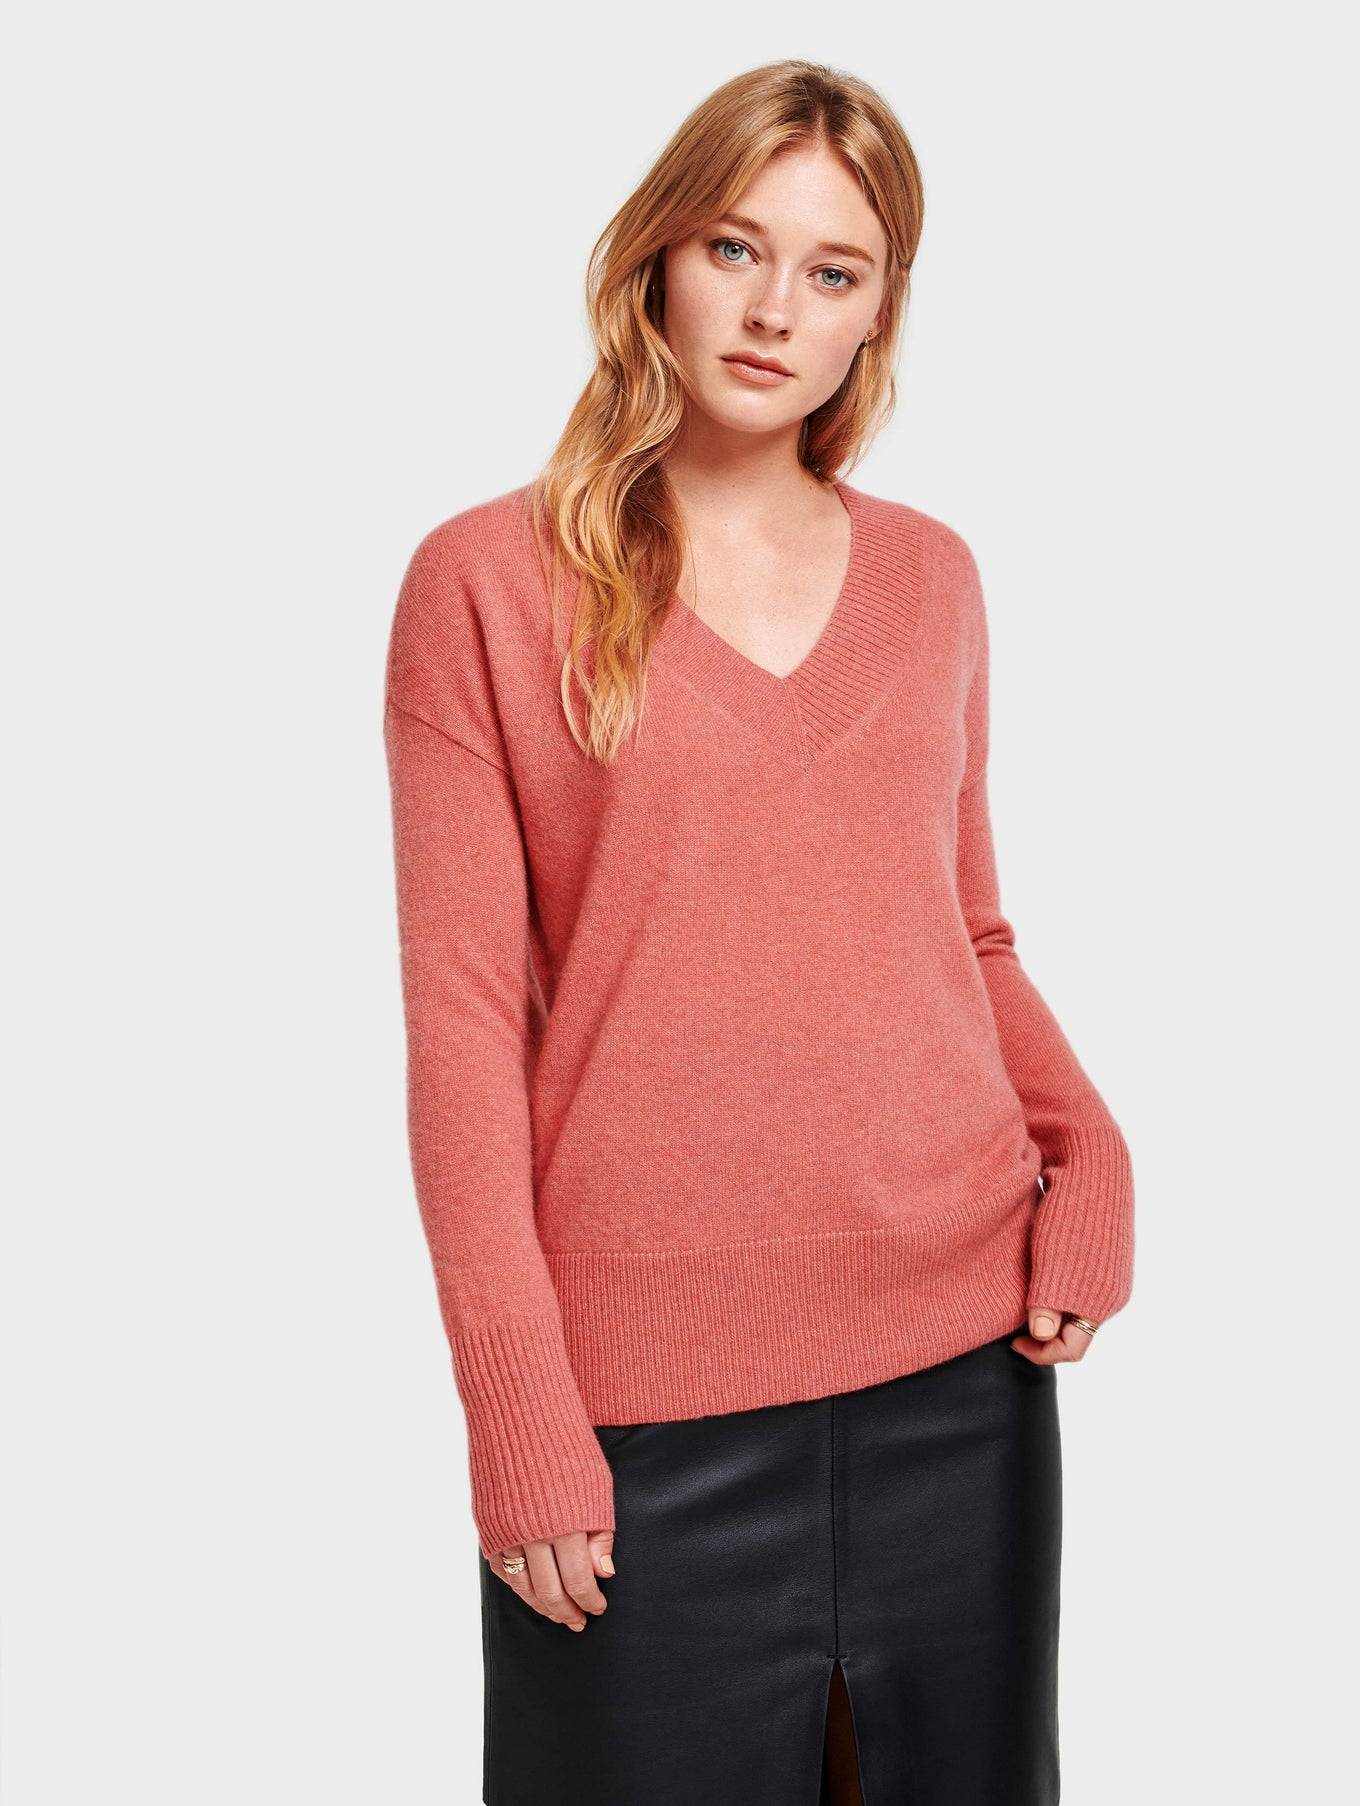 Cashmere Wide Rib V Neck - Pink Opal Heather - Image 3